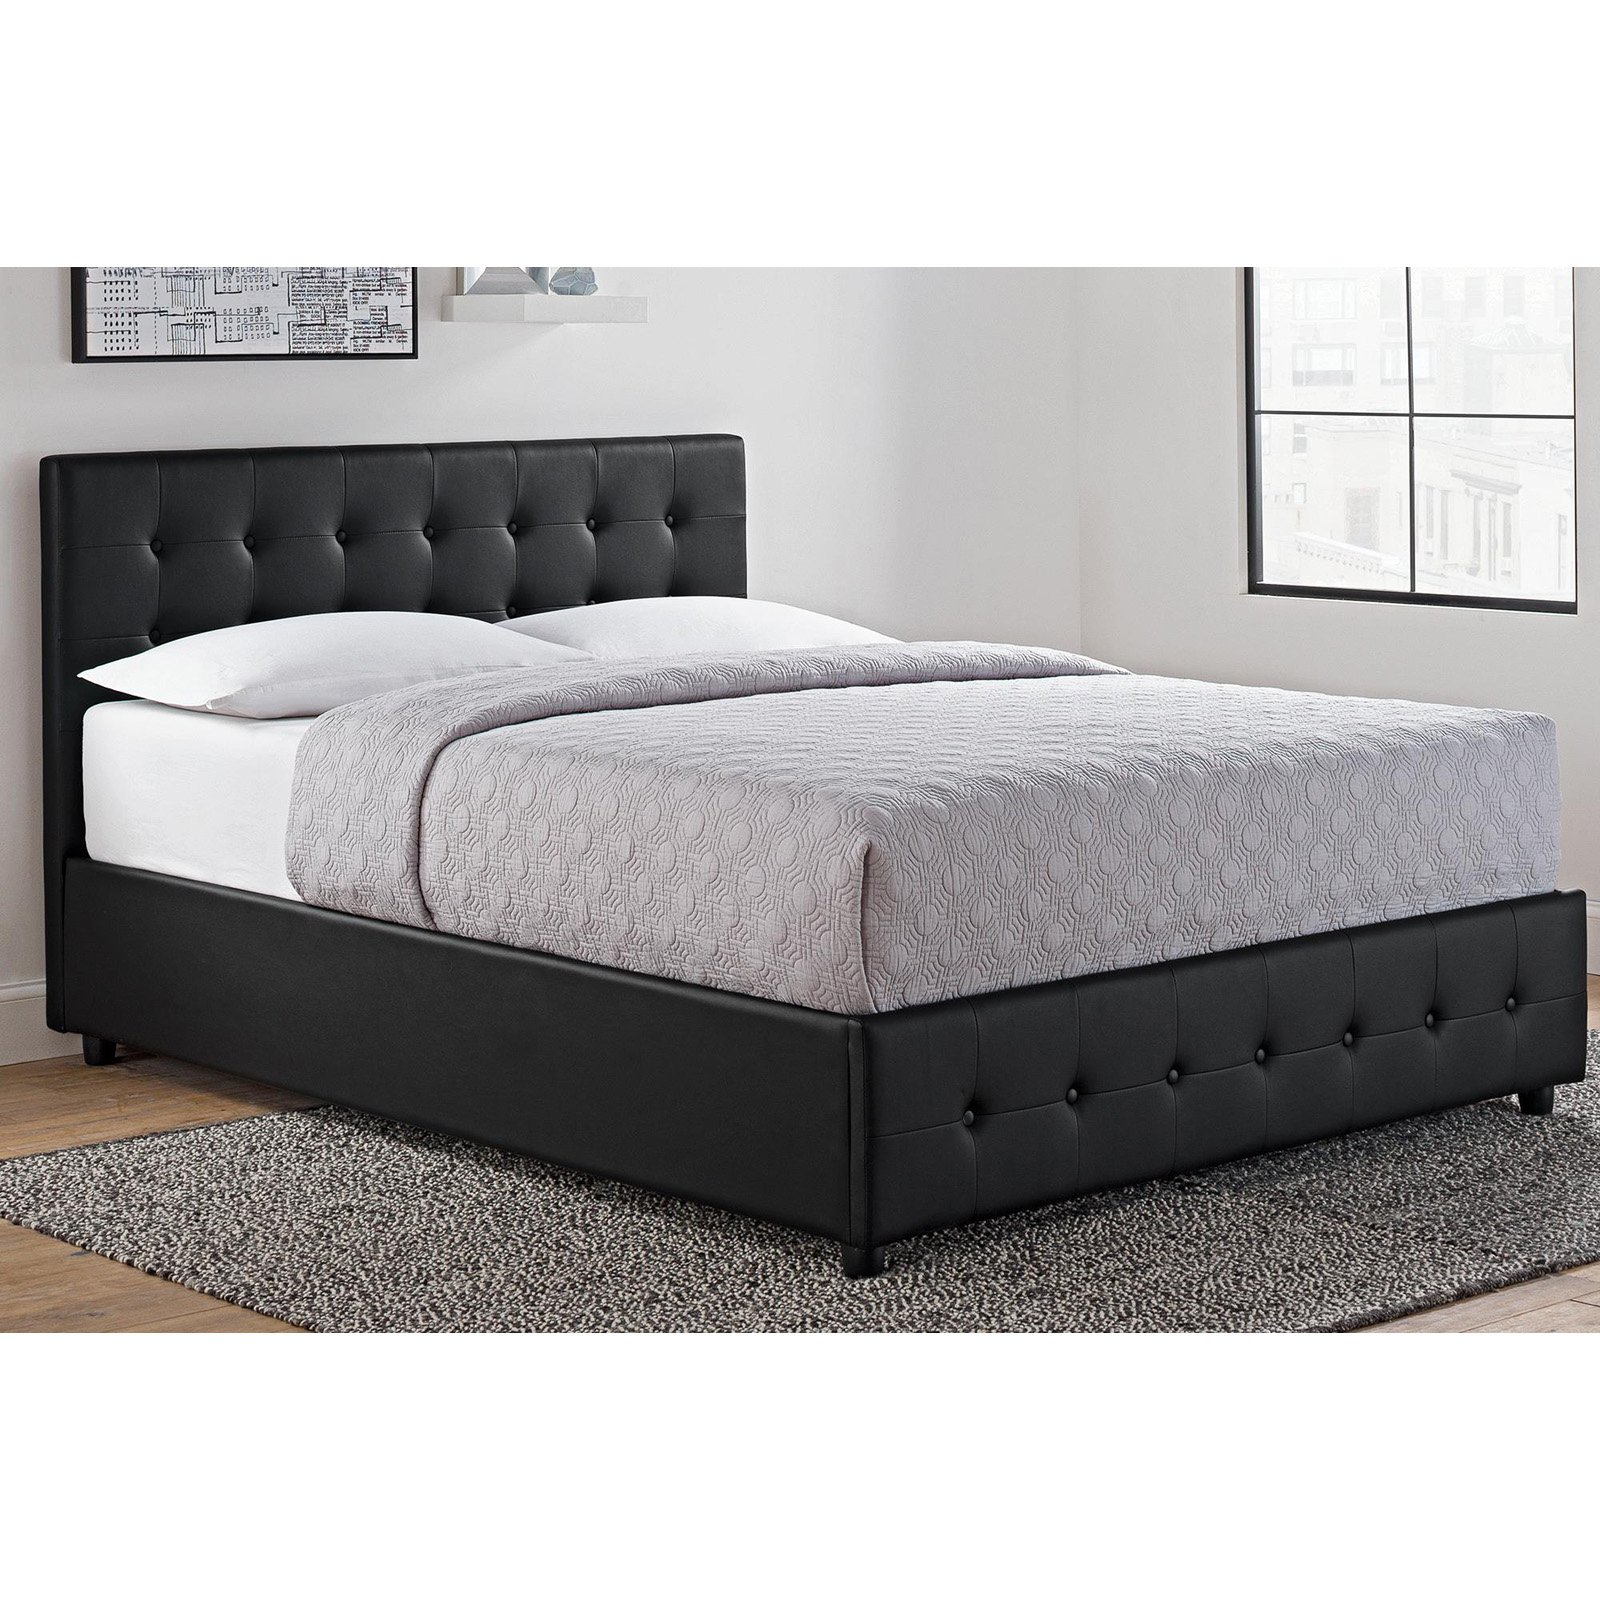 DHP Cambridge Upholstered Bed with Storage, Black, Multiple Sizes